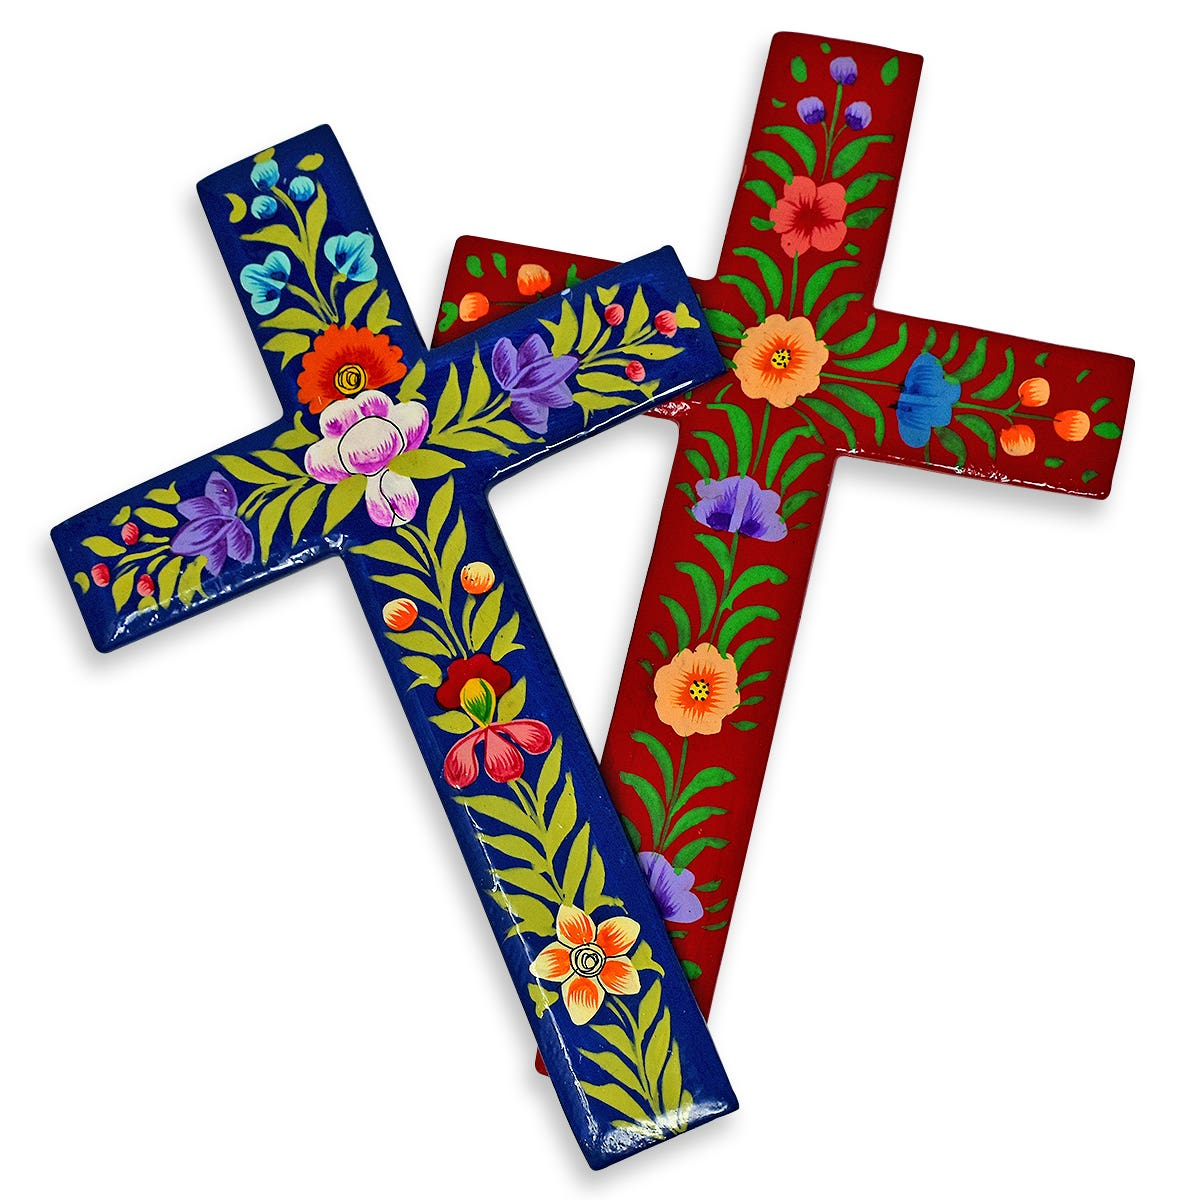 Wooden Cross Wall Decorations